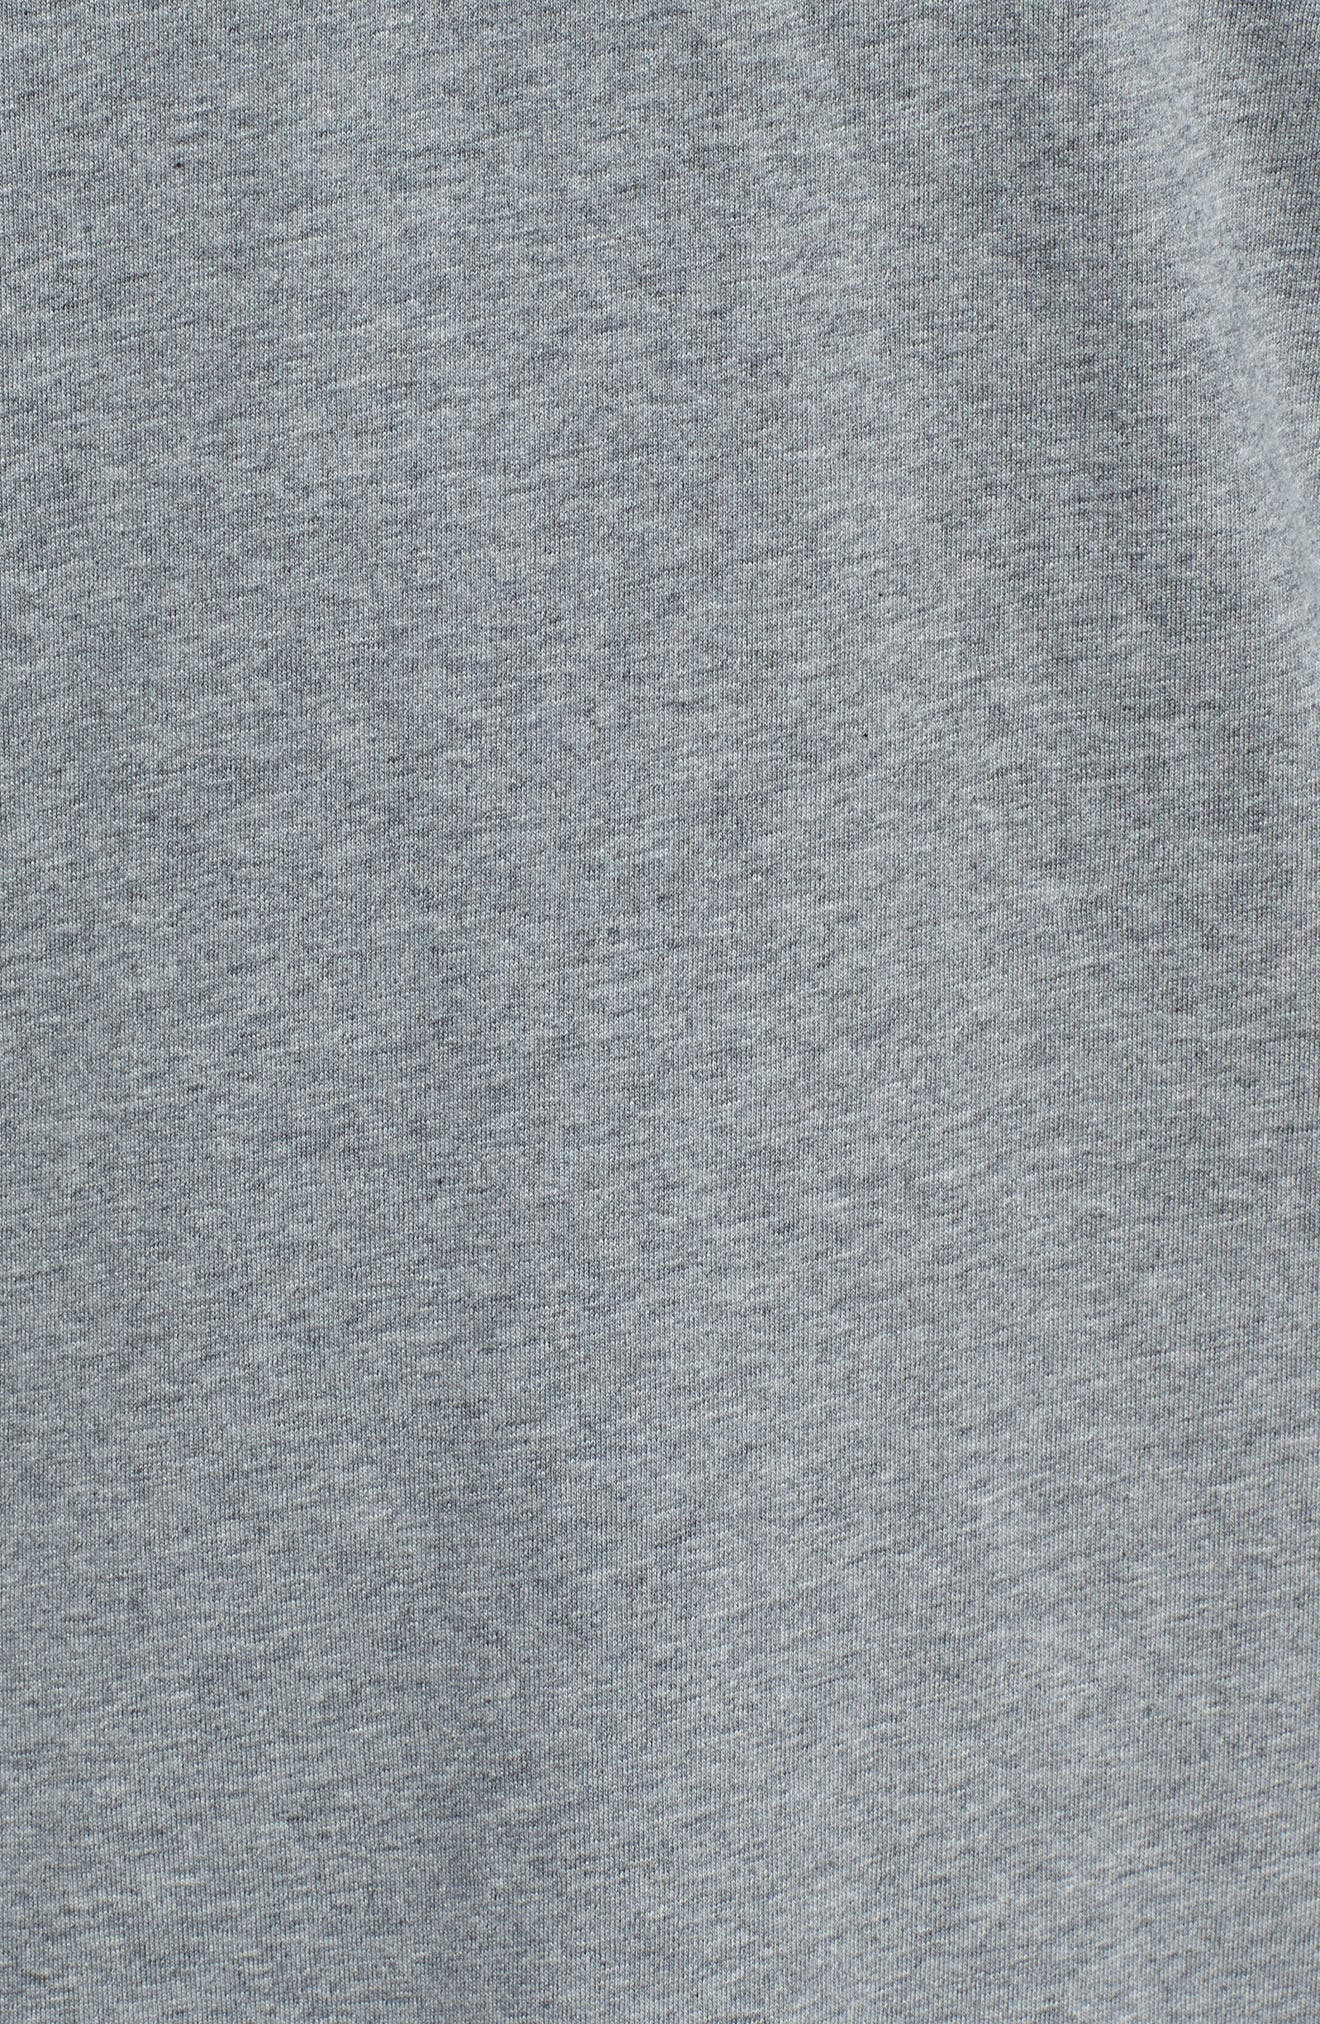 Sportswear 23 Hooded T-Shirt,                             Alternate thumbnail 5, color,                             CARBON HEATHER/ WHITE